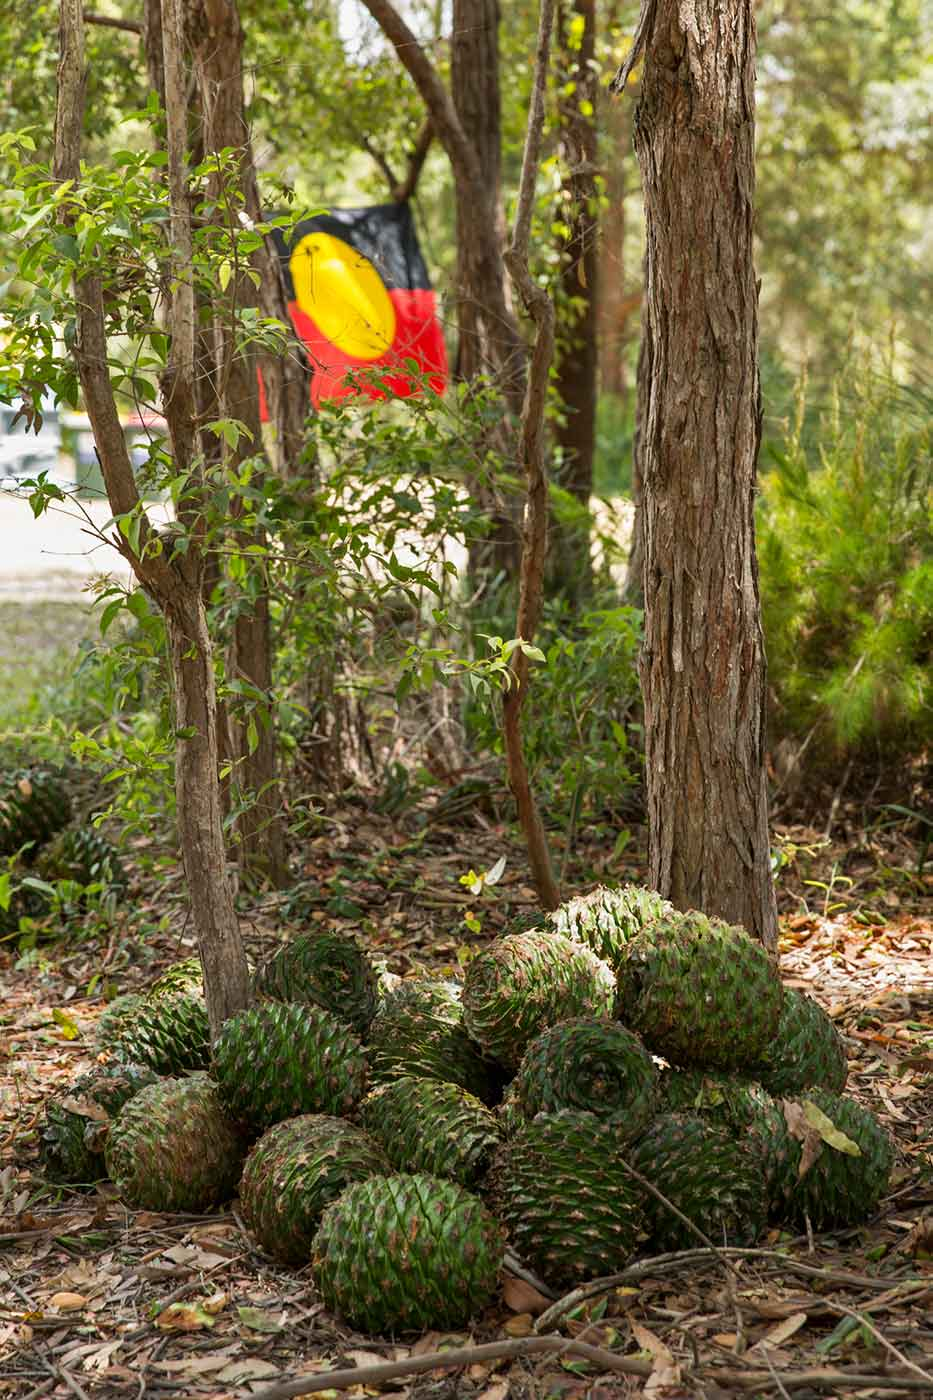 Colour photo of a pile of bunya cones sitting on the ground. There is the Aboriginal flag hanging in the background. - click to view larger image